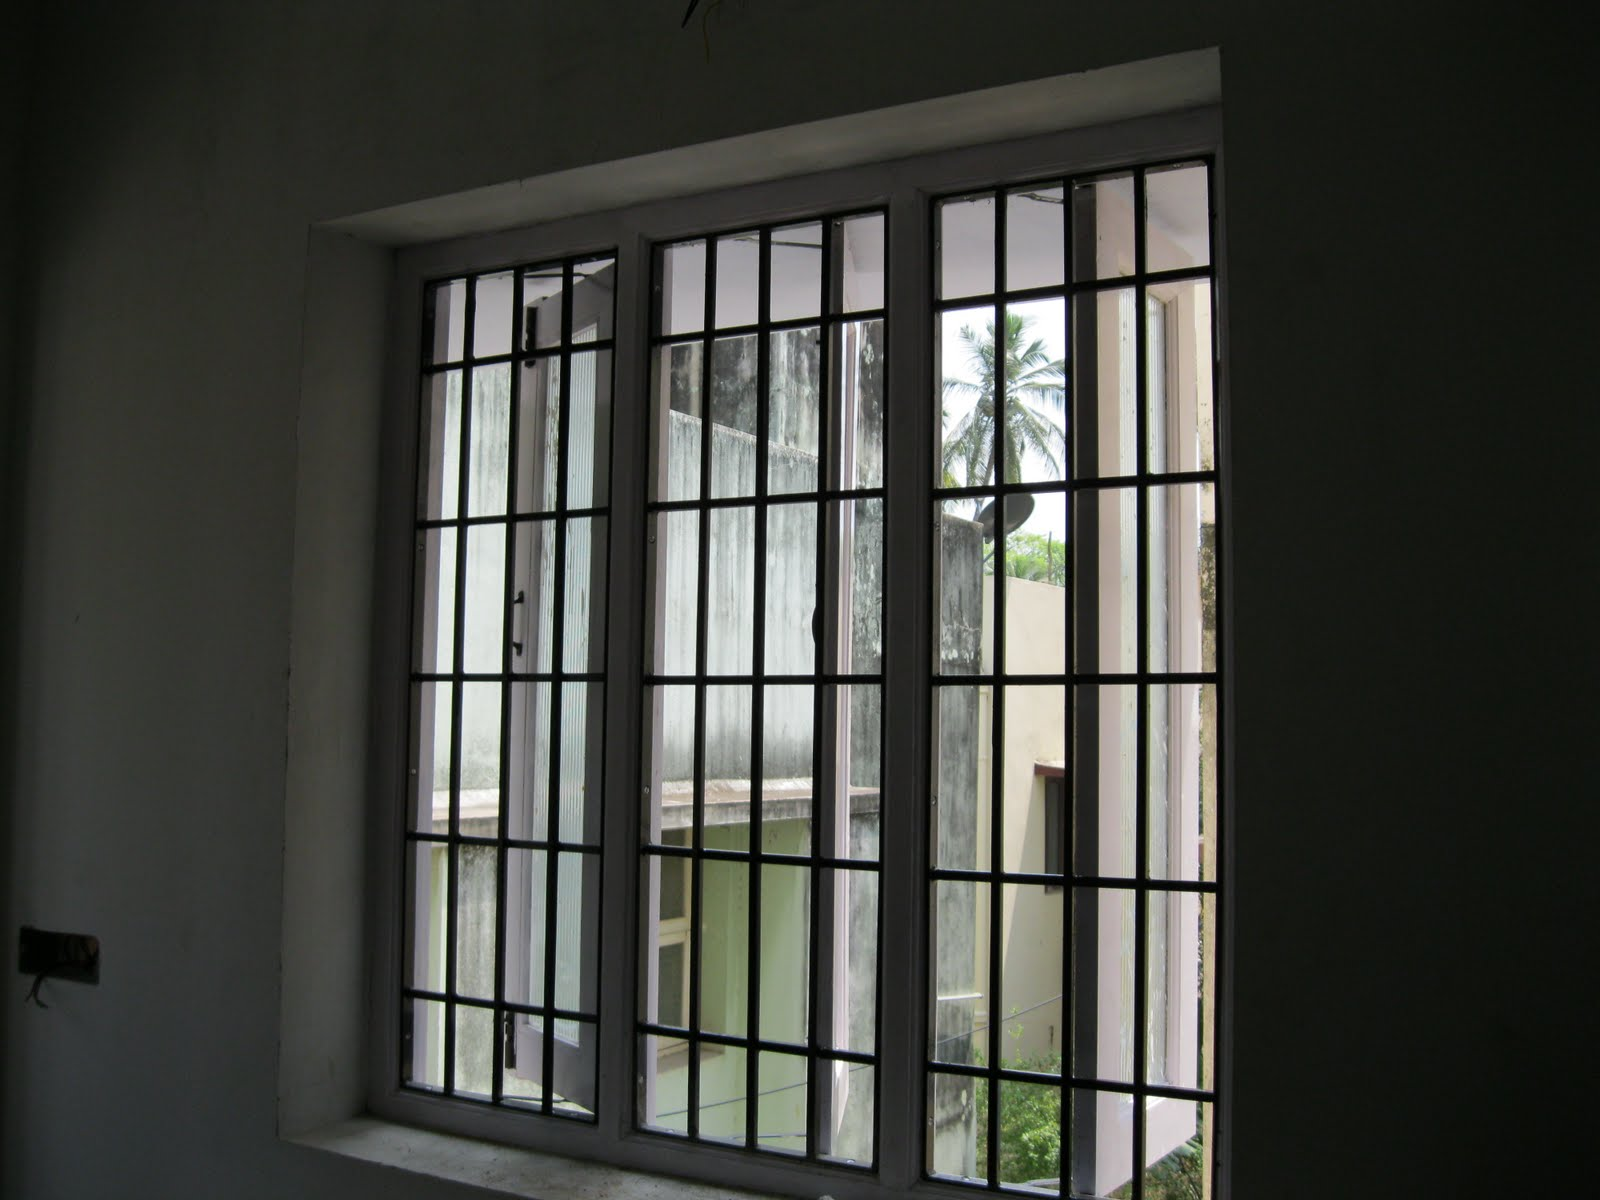 Window grill design photos in kerala joy studio design for Simple window designs for homes